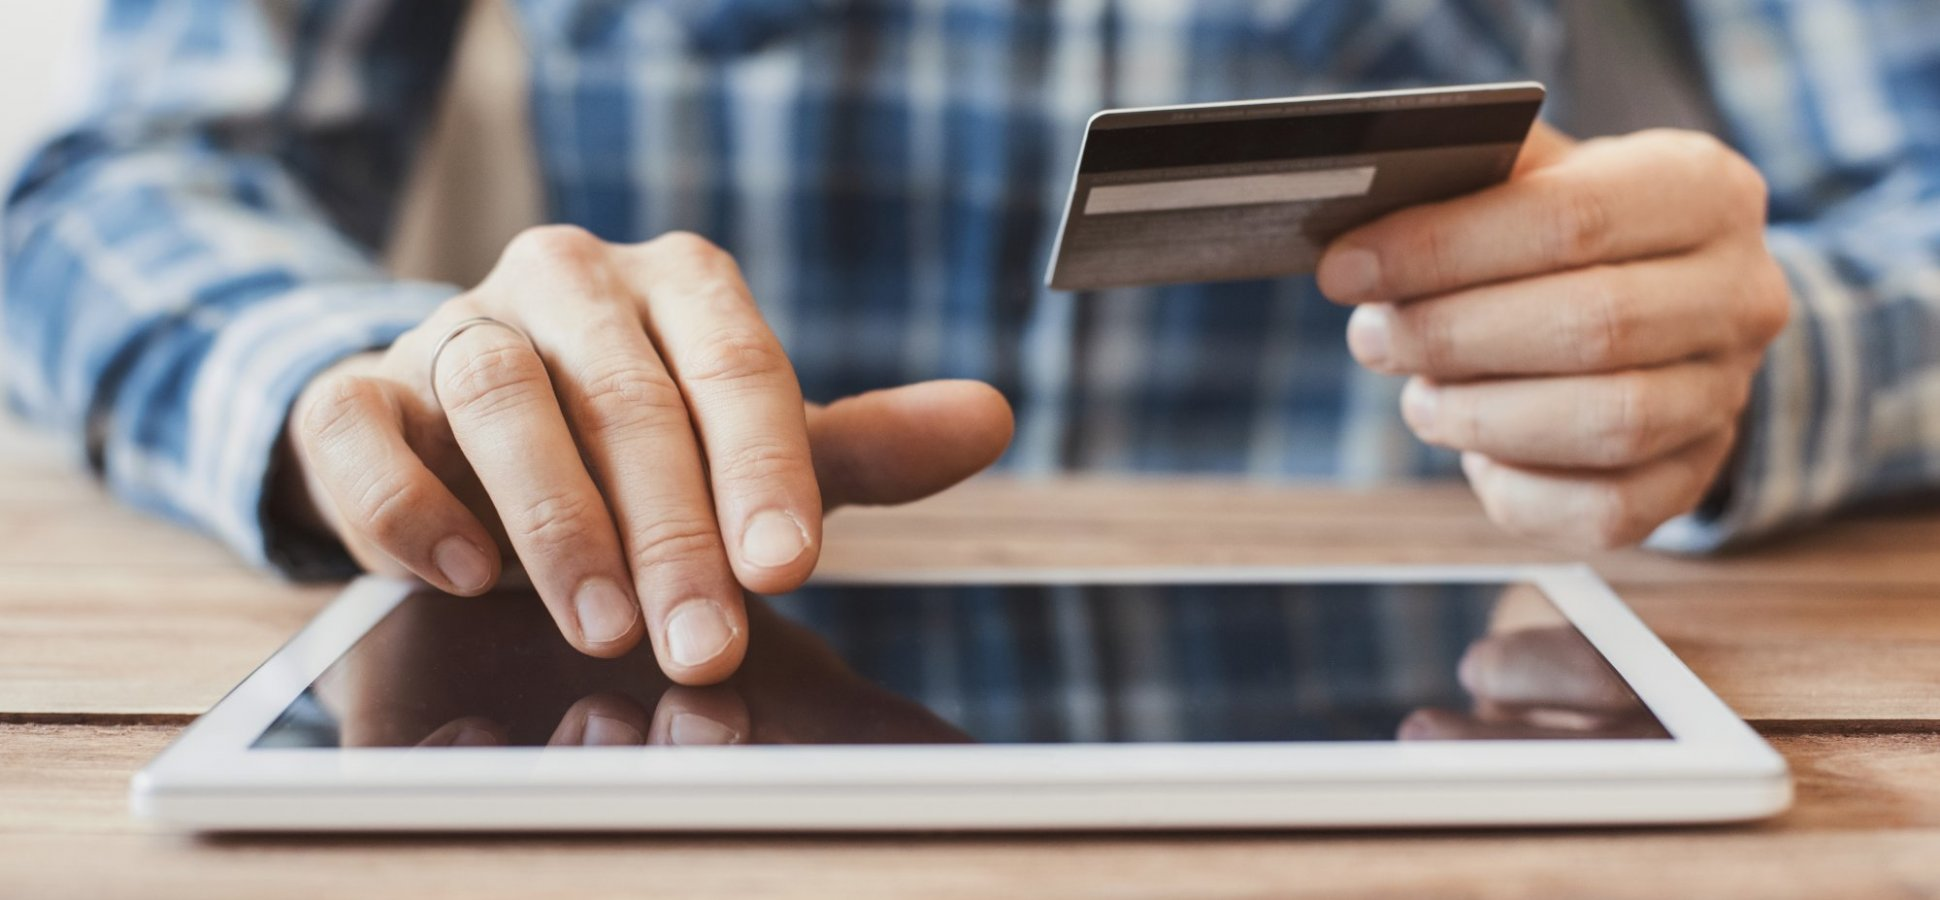 New Google Data Shows What Matters Most to Online Shoppers